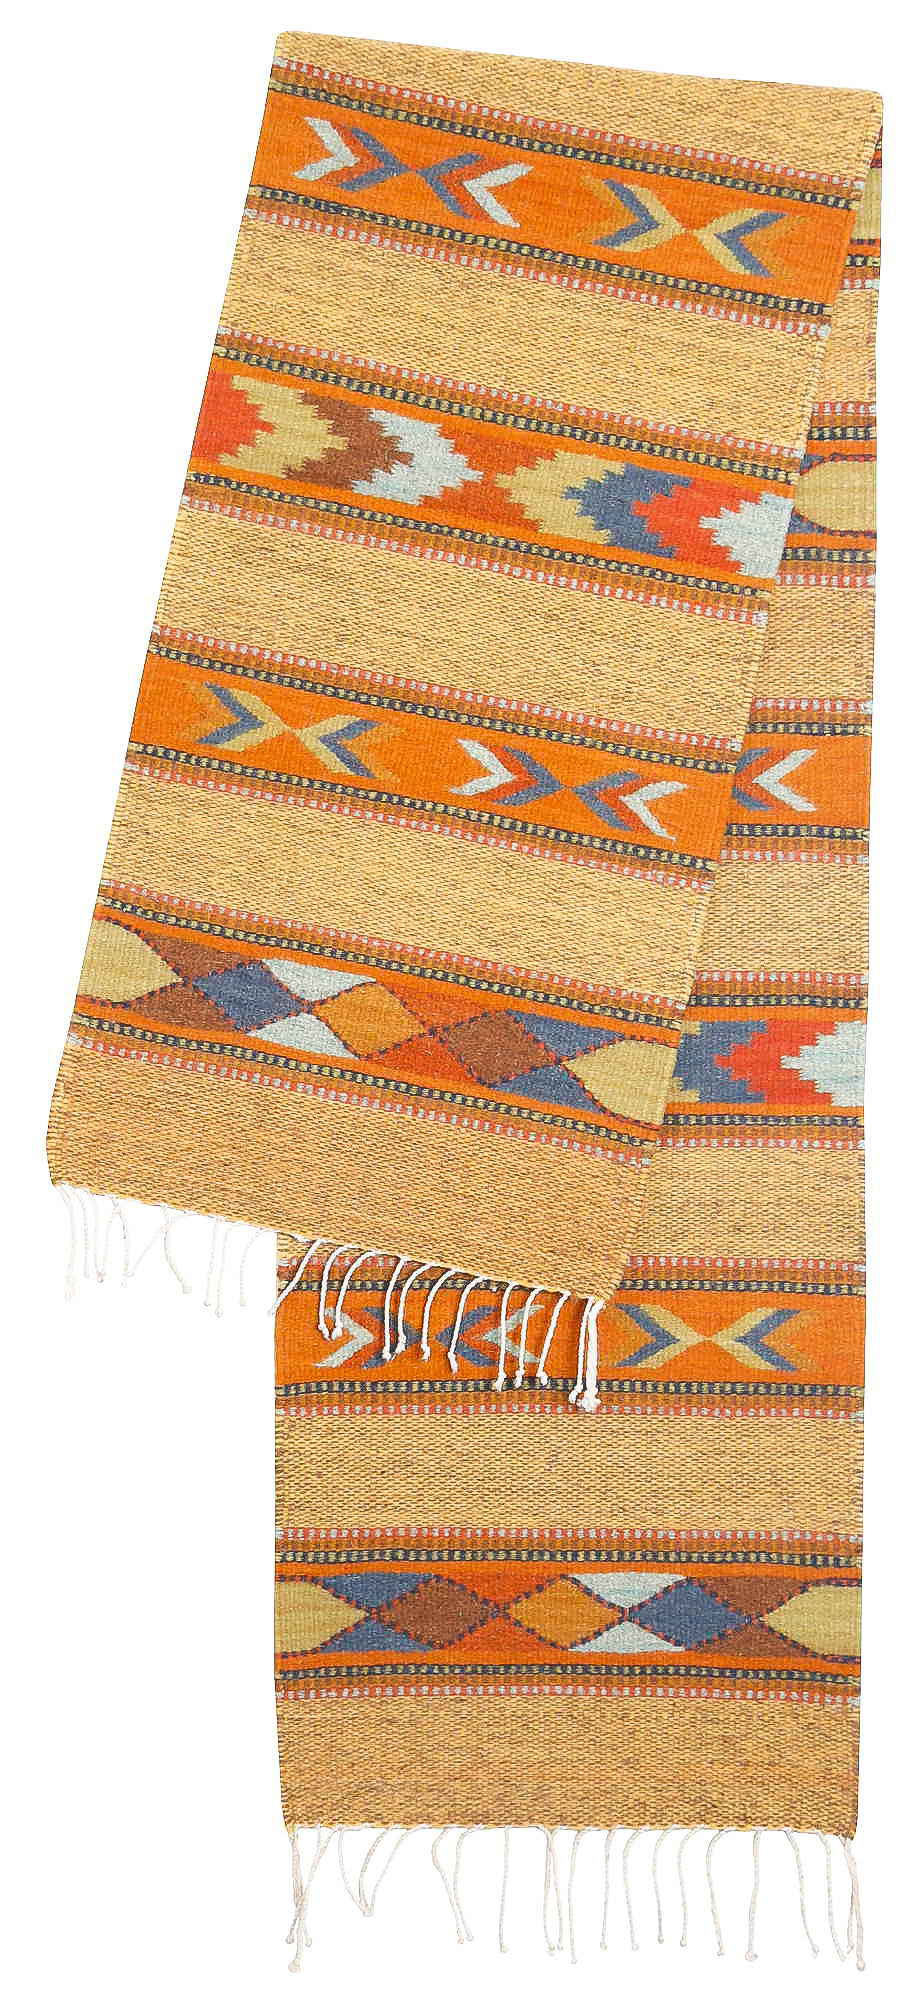 Handwoven Zapotec Table Runner - Cintas Juarez Wool Oaxacan Textile